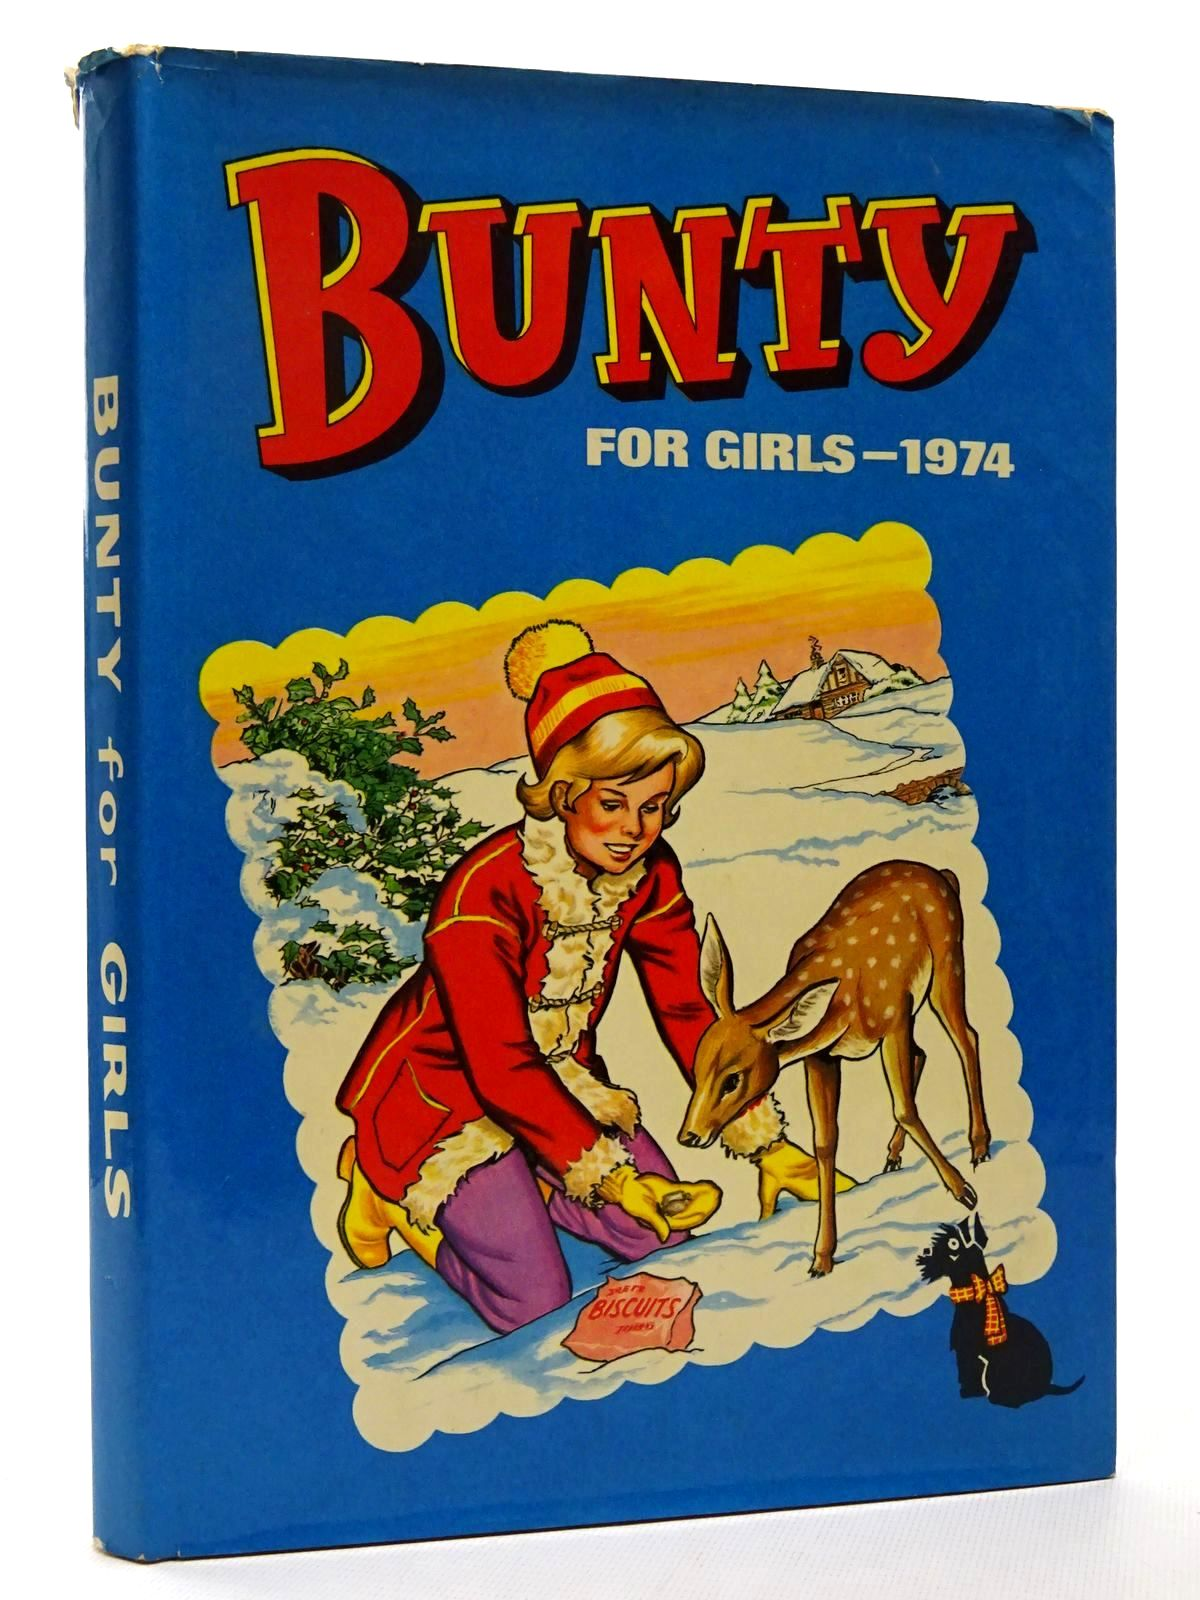 Photo of BUNTY FOR GIRLS 1974 published by D.C. Thomson & Co Ltd. (STOCK CODE: 2124322)  for sale by Stella & Rose's Books